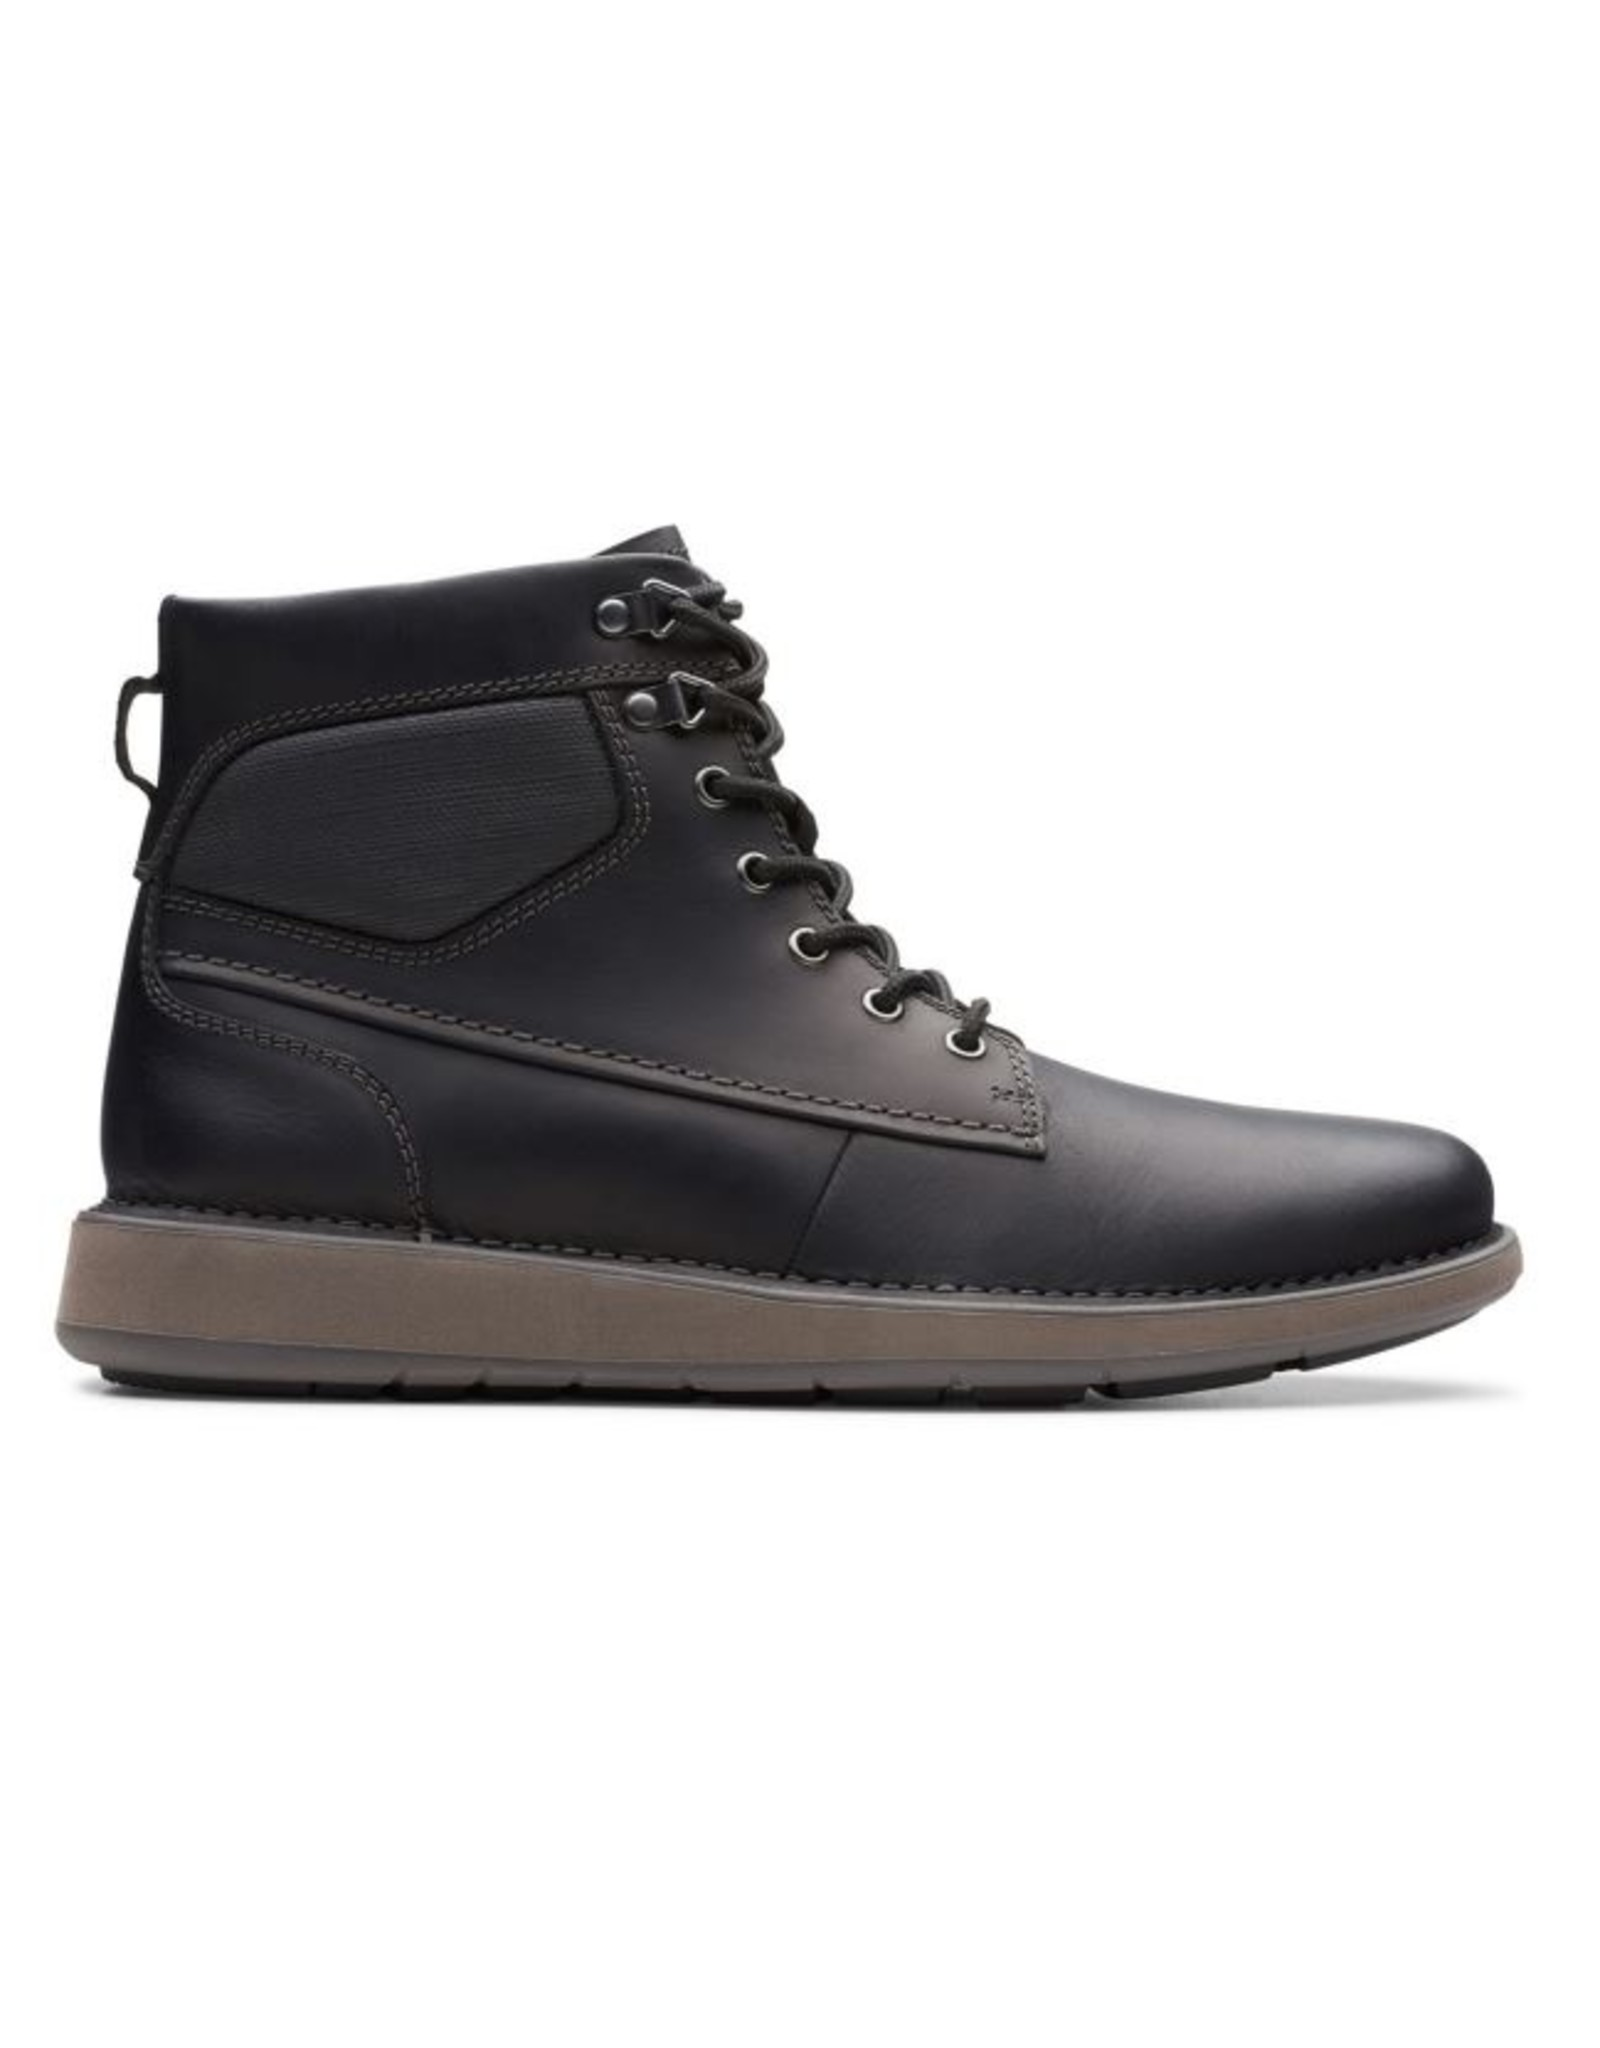 Clarks Men's Un Larvik Peak